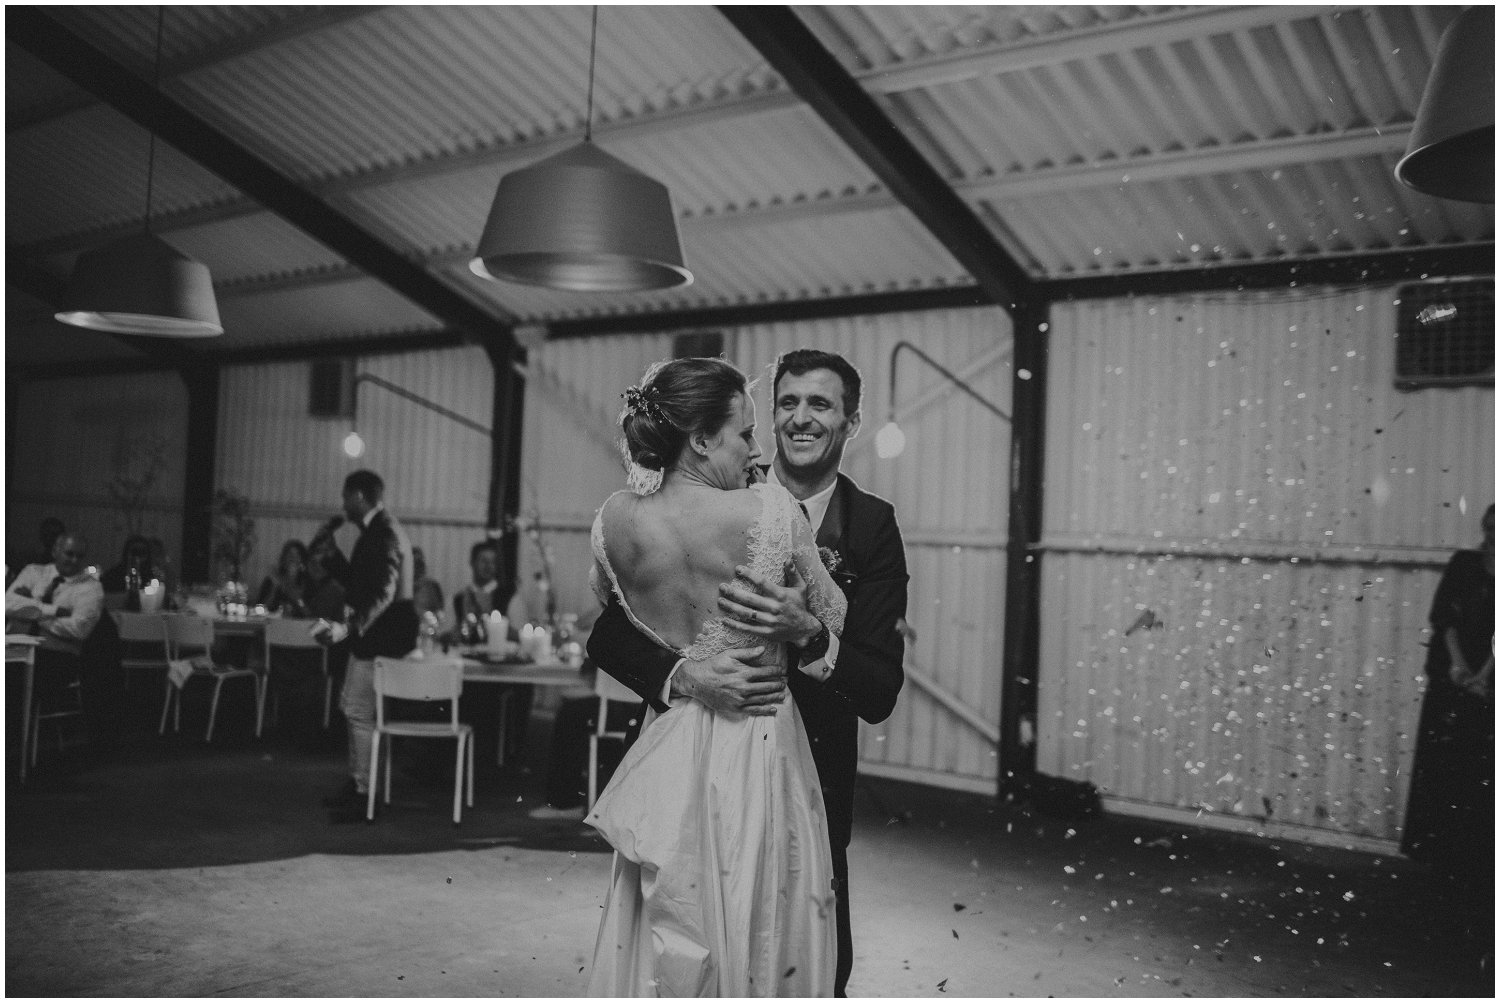 Top Wedding Photographer Cape Town South Africa Artistic Creative Documentary Wedding Photography Rue Kruger_1270.jpg